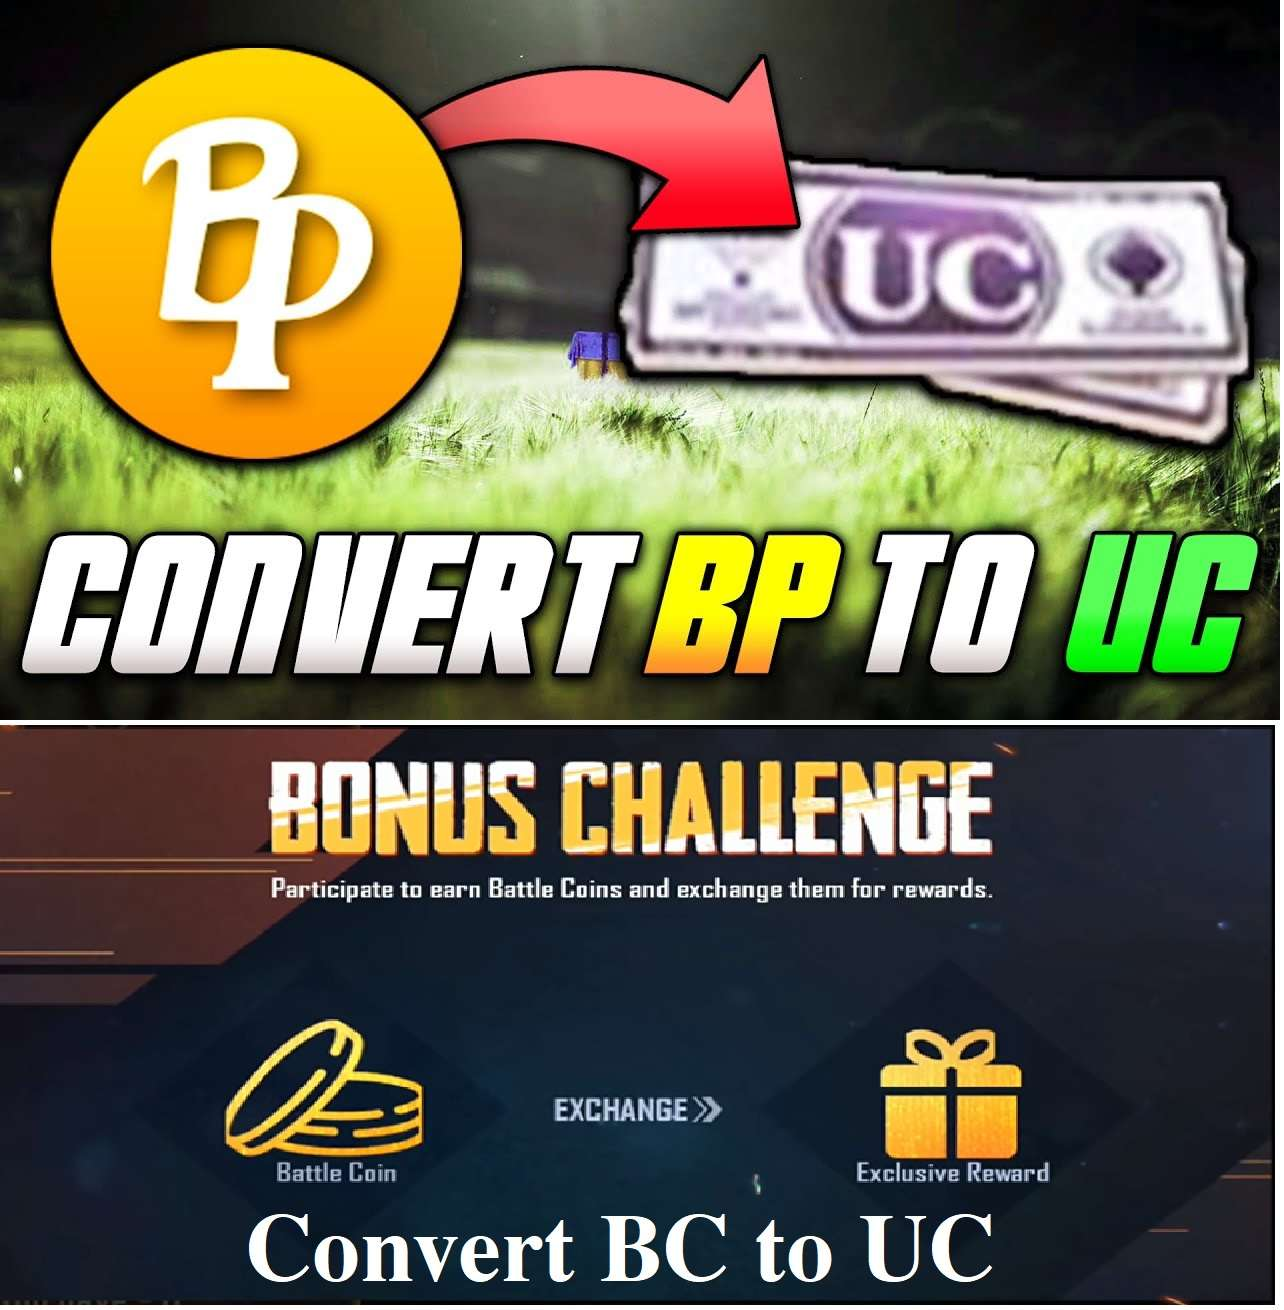 Now The Bonus Challenge Lets You Convert Bp To Uc Or Bc To Uc In - now!    the bonus challenge lets you convert bp to uc or bc to uc in pubg mobi!   le lets see how